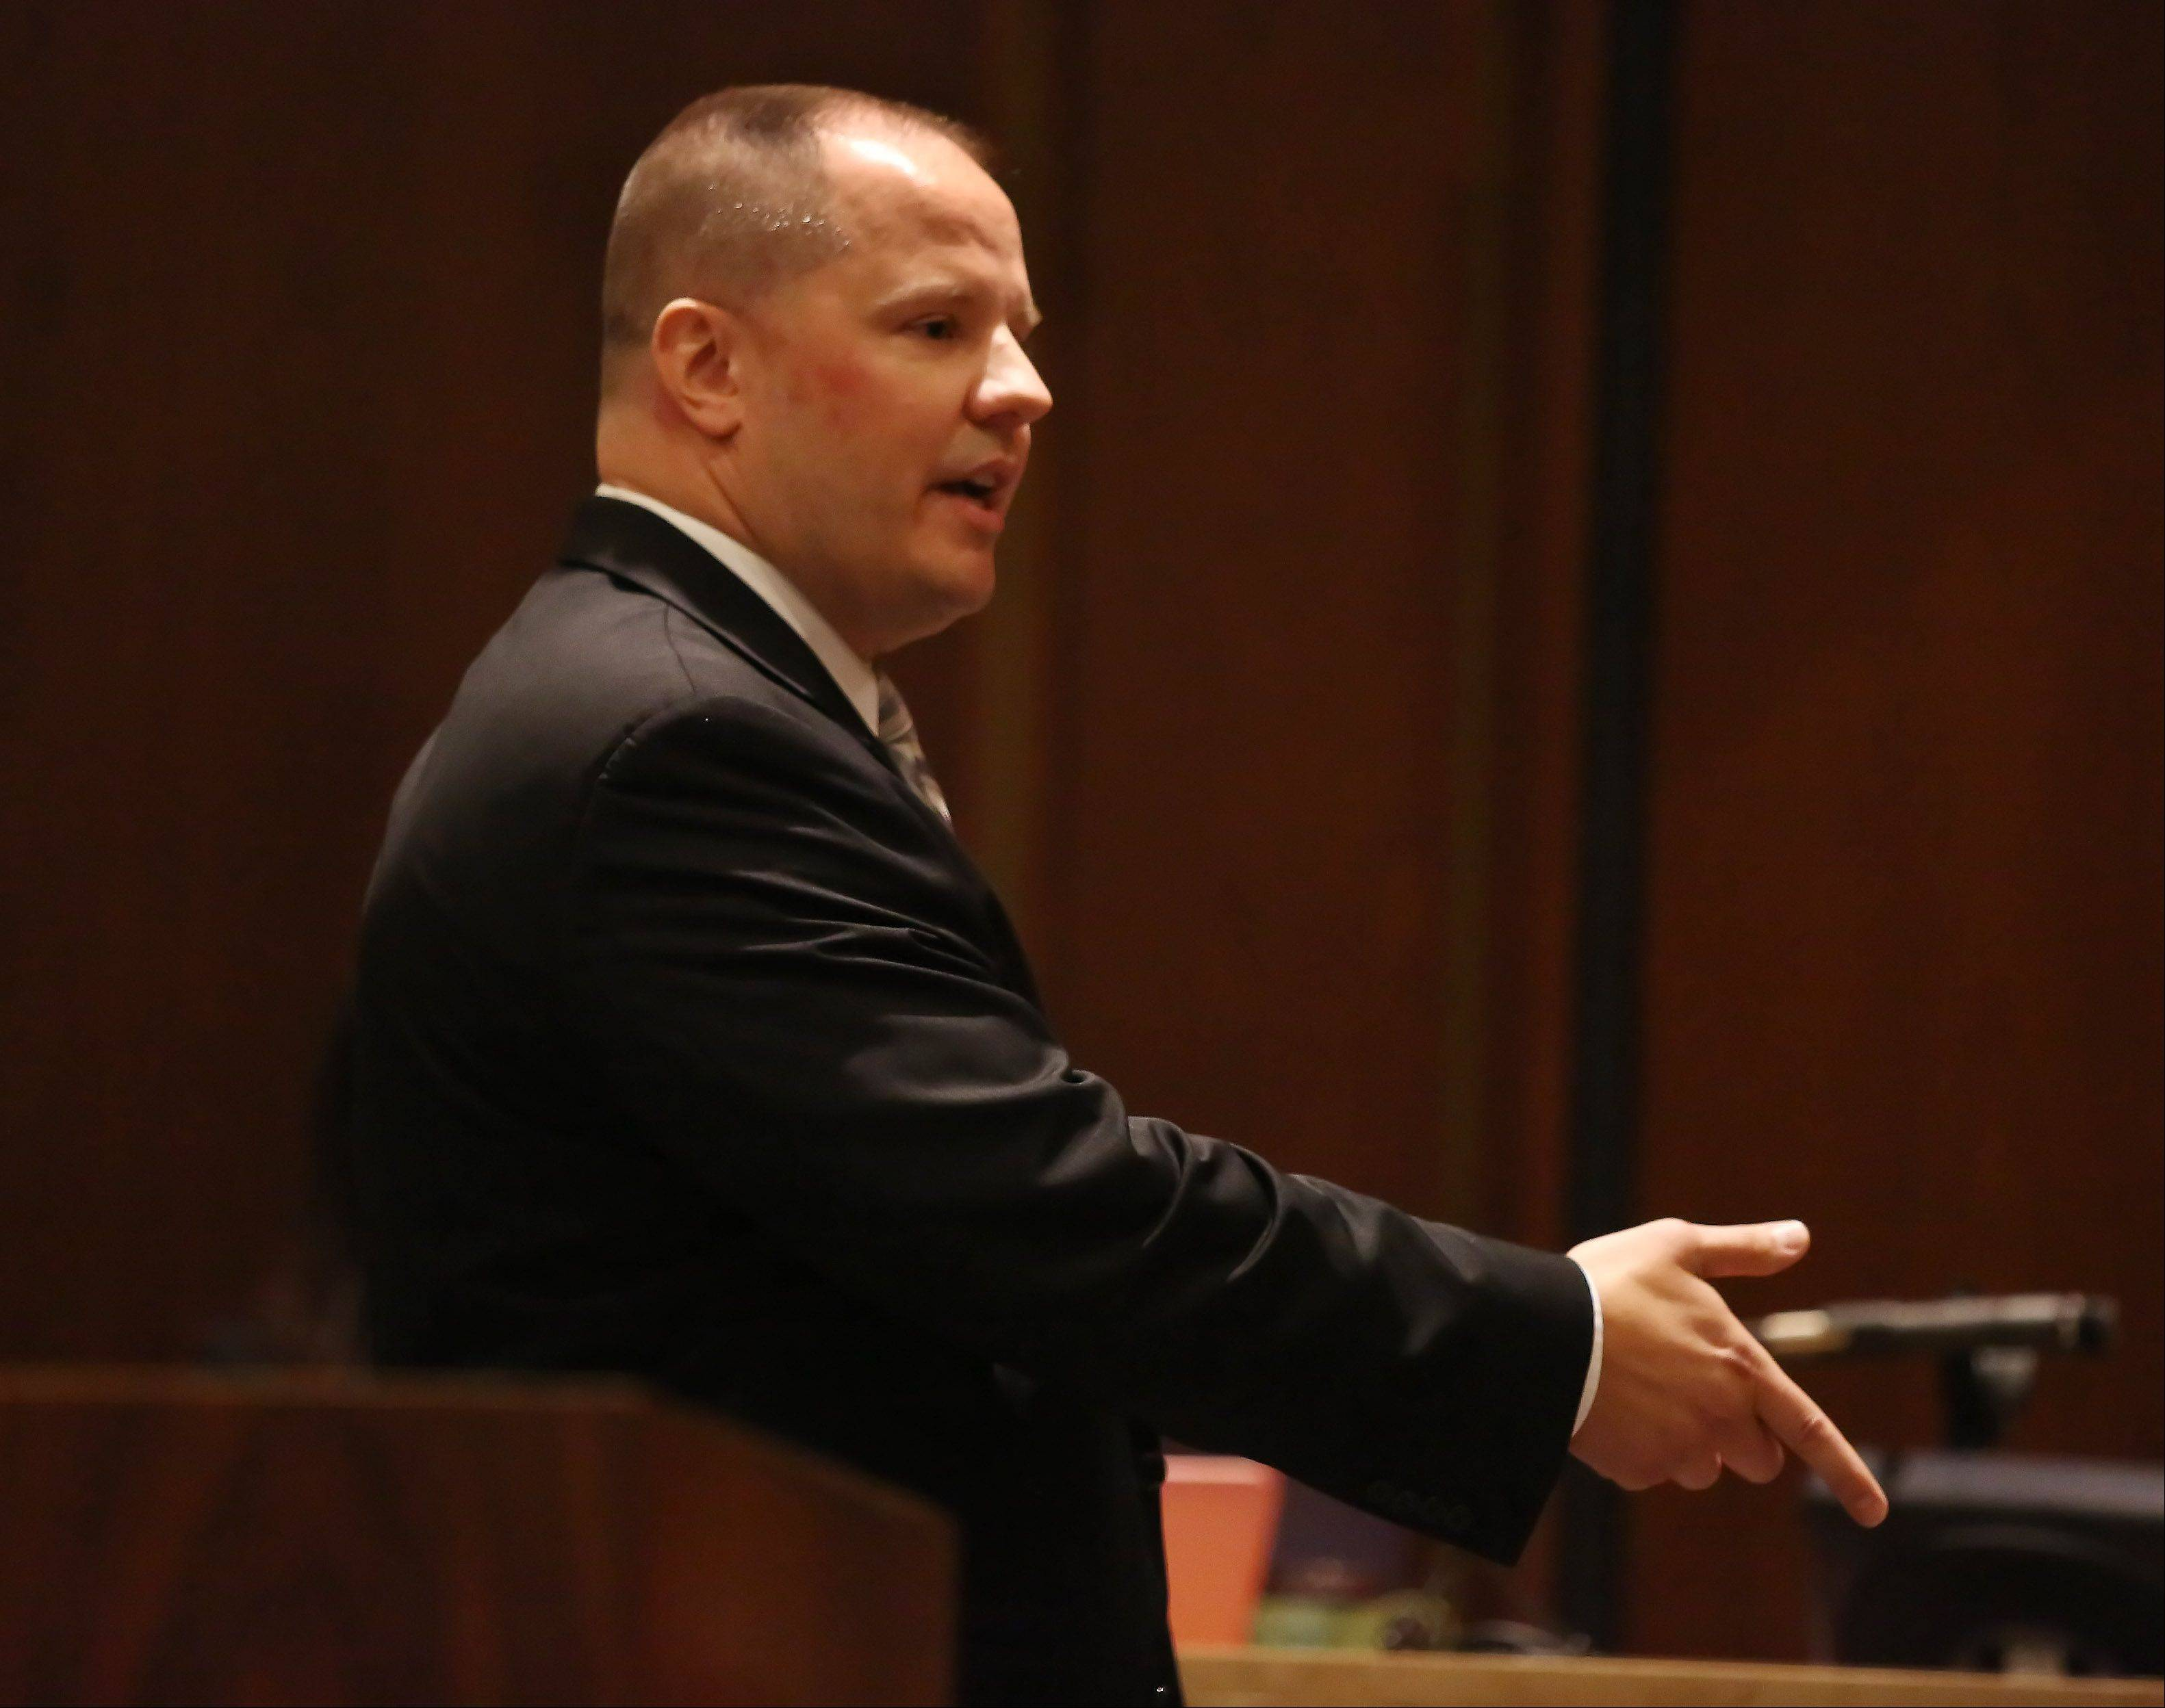 Lake County Assistant State's Attorney Eric Kalata gives opening statements during the murder trial of Montago Suggs of Kenosha, Wis., Tuesday at the Lake County courthouse in Waukegan. Suggs is accused of killing Melinda Morrell of Round Lake Park during a robbery at a check cashing store in Waukegan in 2007.